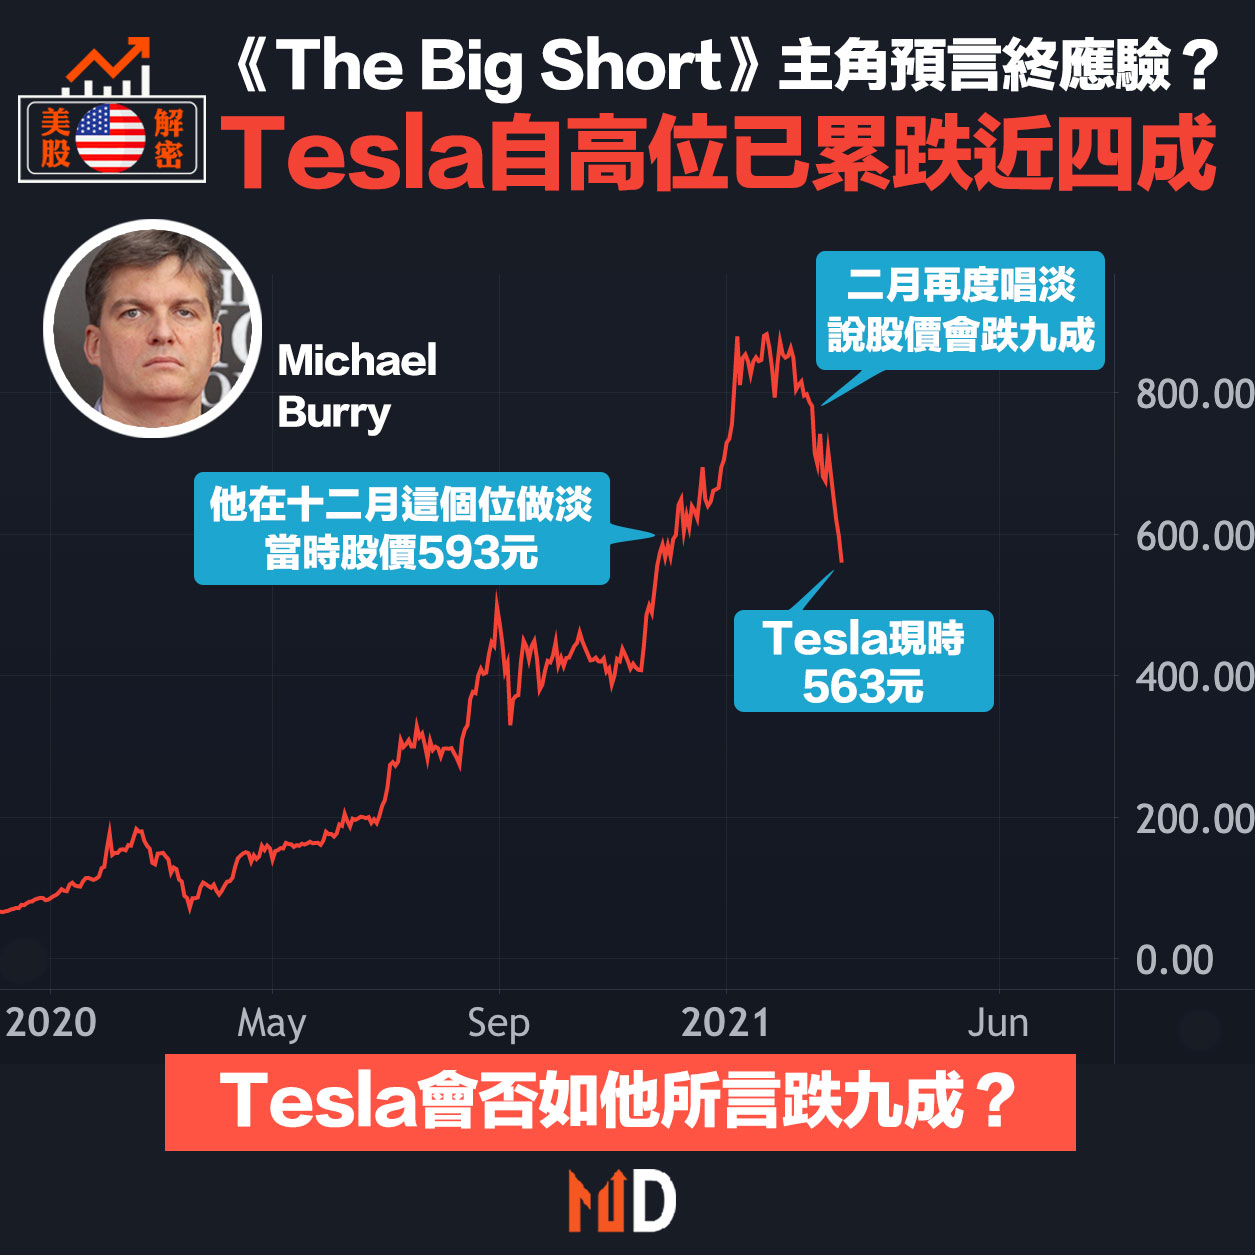 《沽注一擲》主角Michael Burry預言終應驗?Tesla自高位已累跌近四成